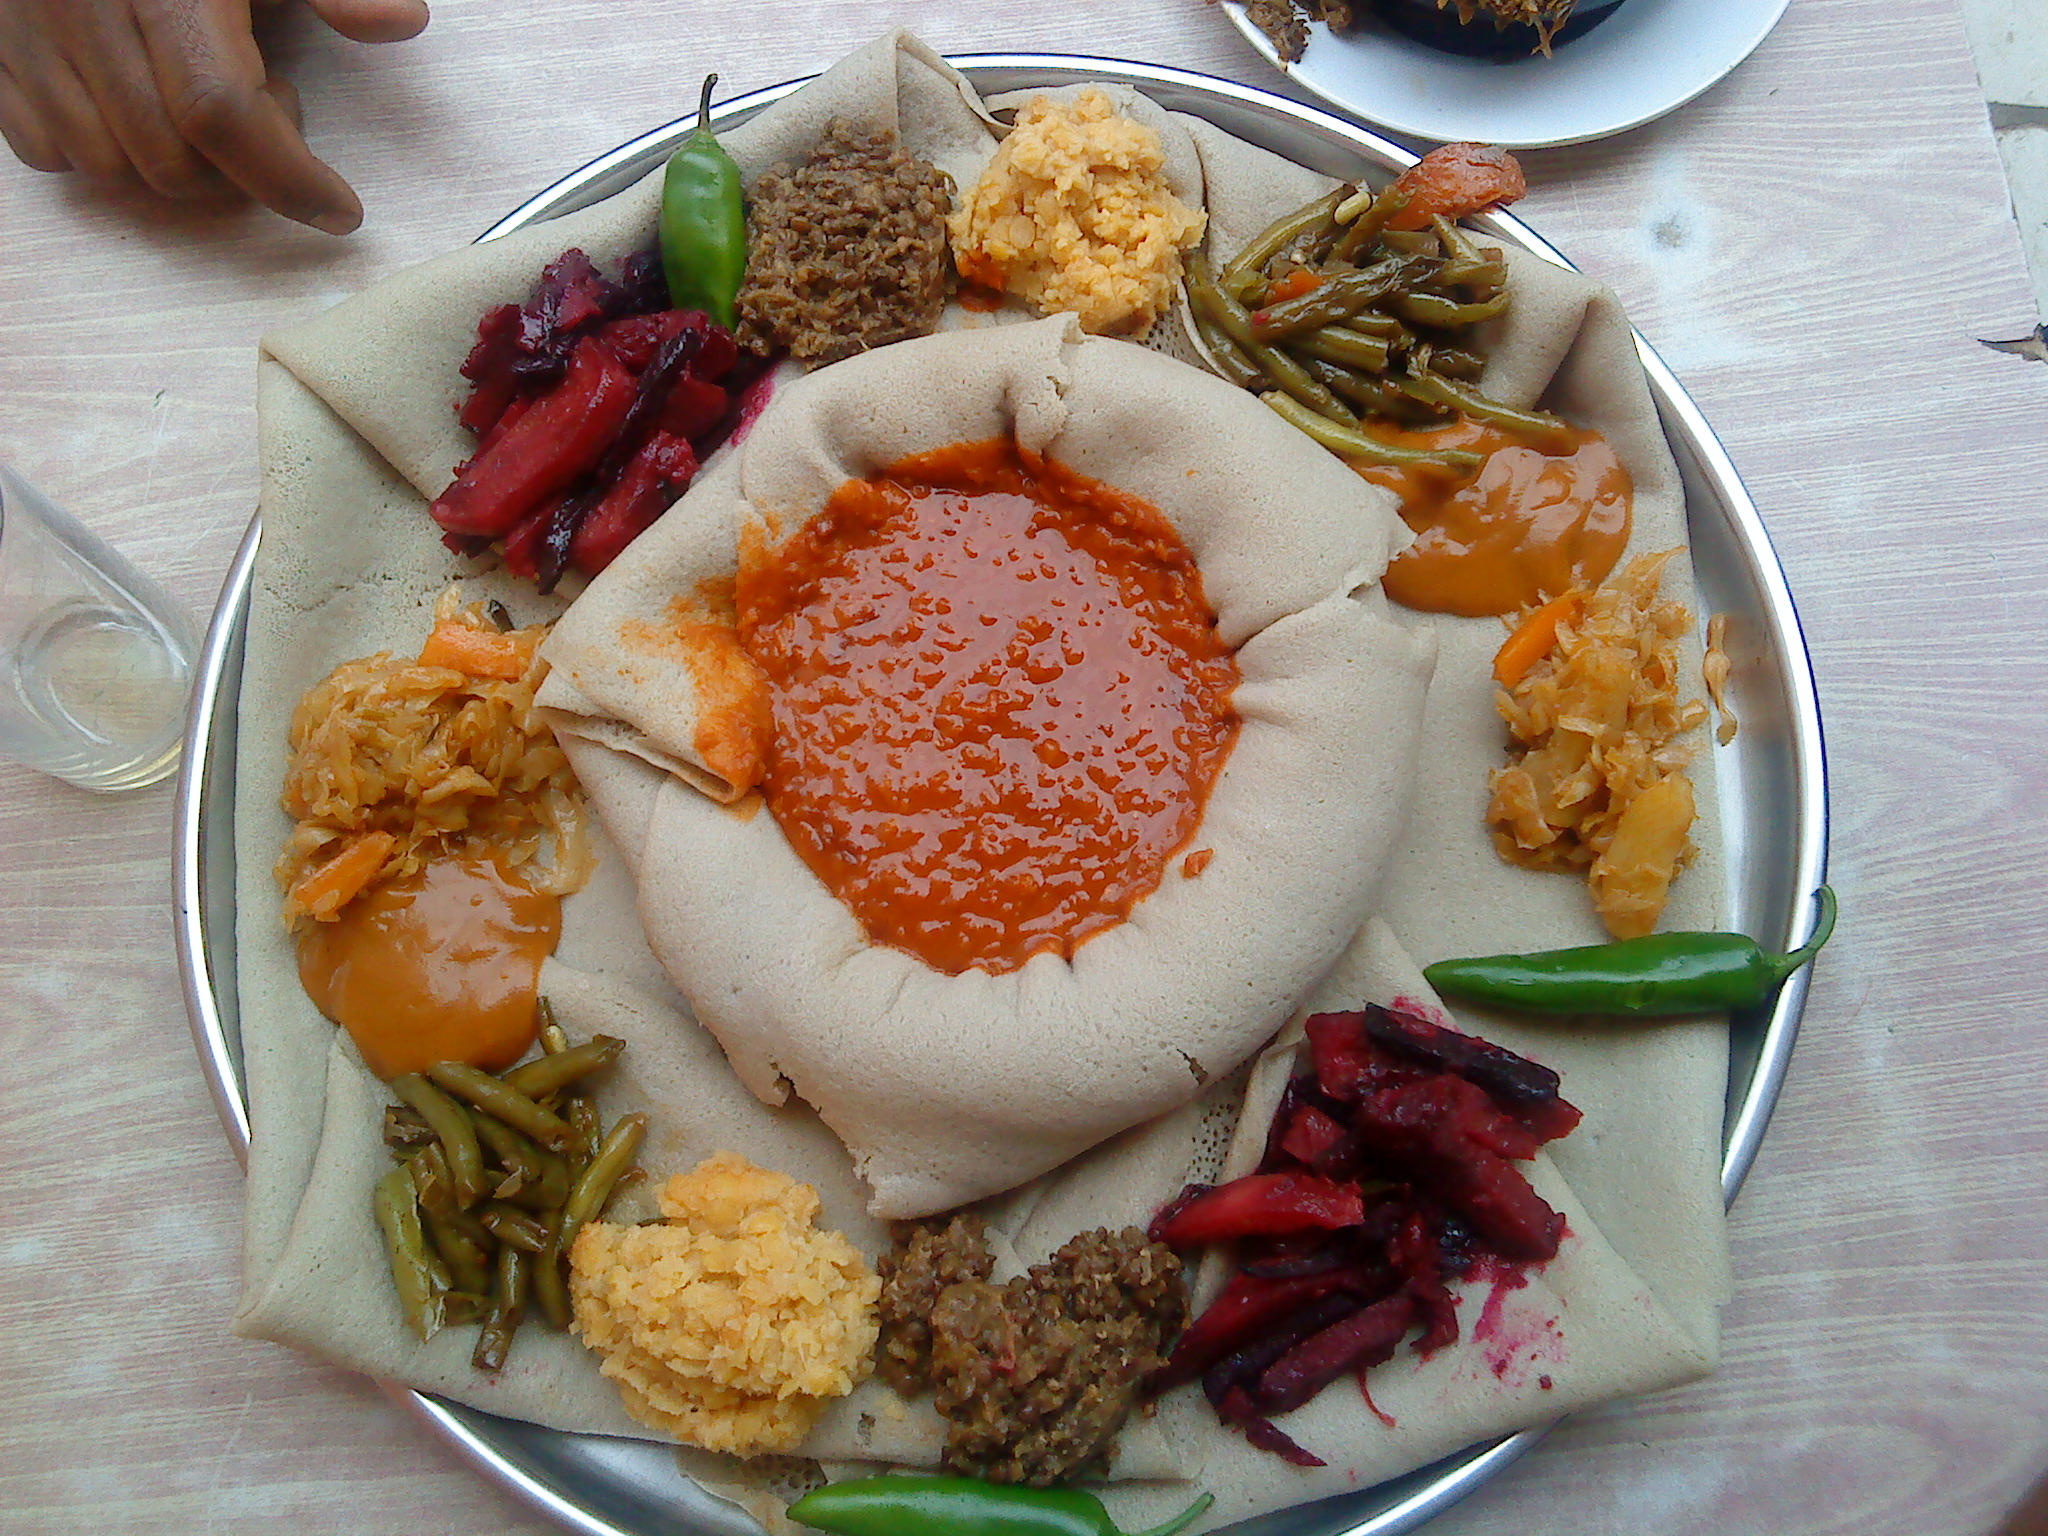 Mesrak mekonnen on ethiopian cuisine heritage radio network for Authentic ethiopian cuisine